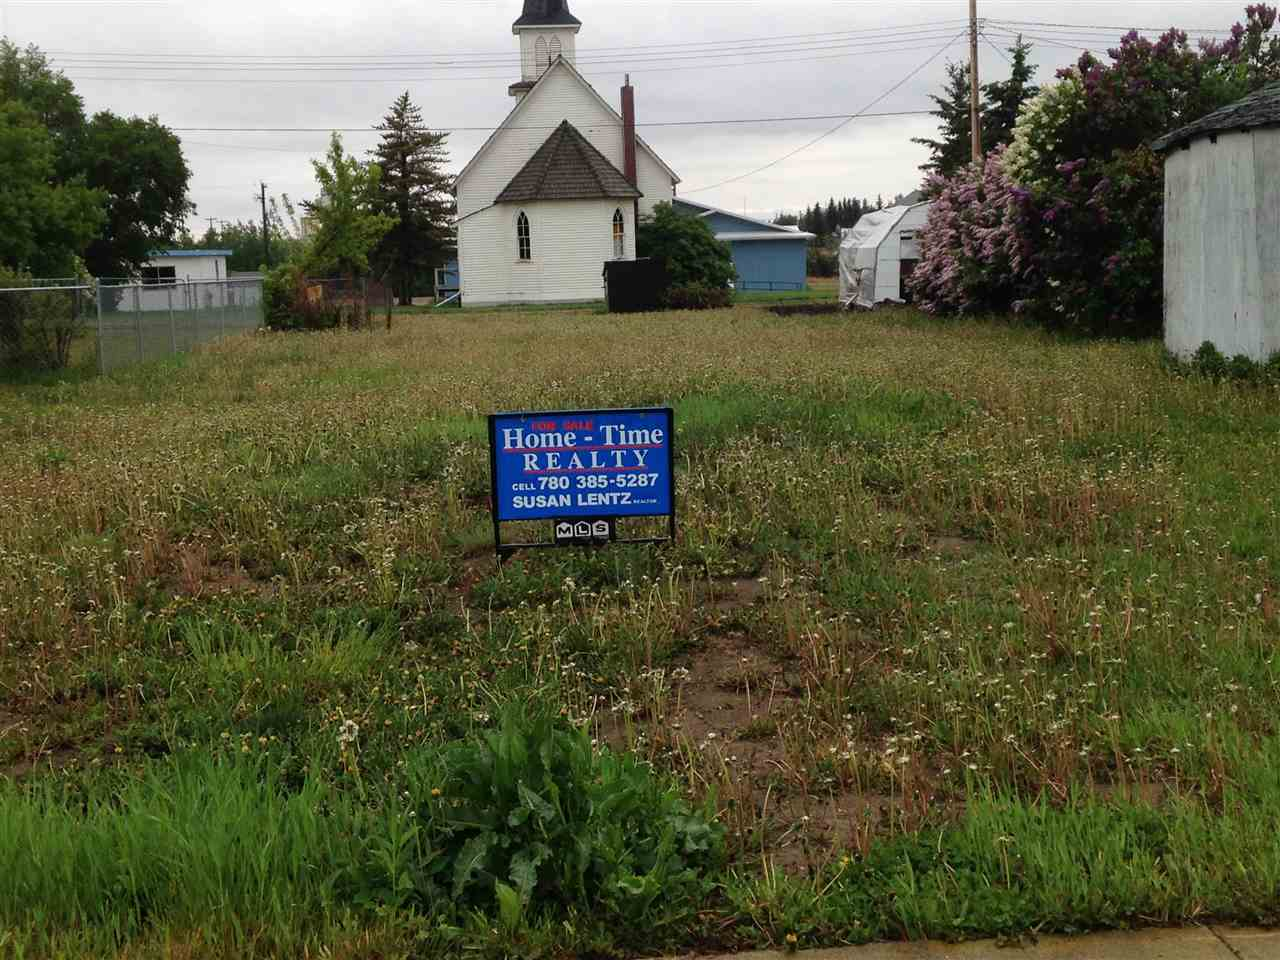 Vacant lot-cleared and ready for development-services to this 50 x 140 lot. Property sold as is where is.  The Village of Holden is located approximately 55 minutes east of Edmonton on HWY 14 and offers a K-6 Elementary School plus numerous recreational and cultural opportunities.